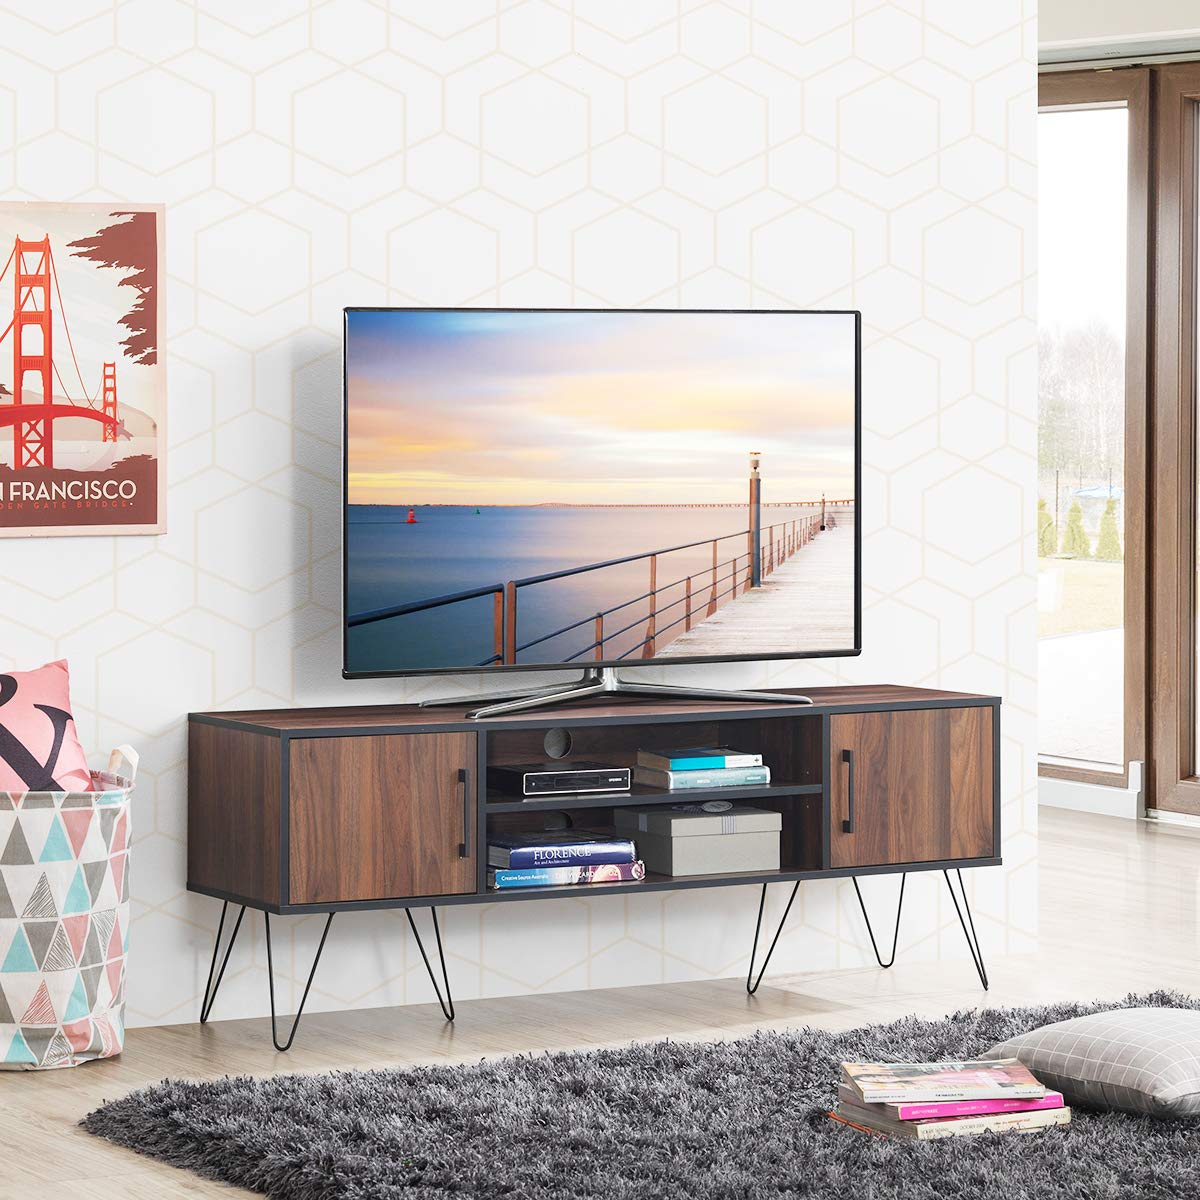 Tangkula Retro TV Stand, TV Console, Modern Entertainment Center for Flat Screen TV Cable Box Gaming Consoles, Media Console with Cabinet Doors Walnut